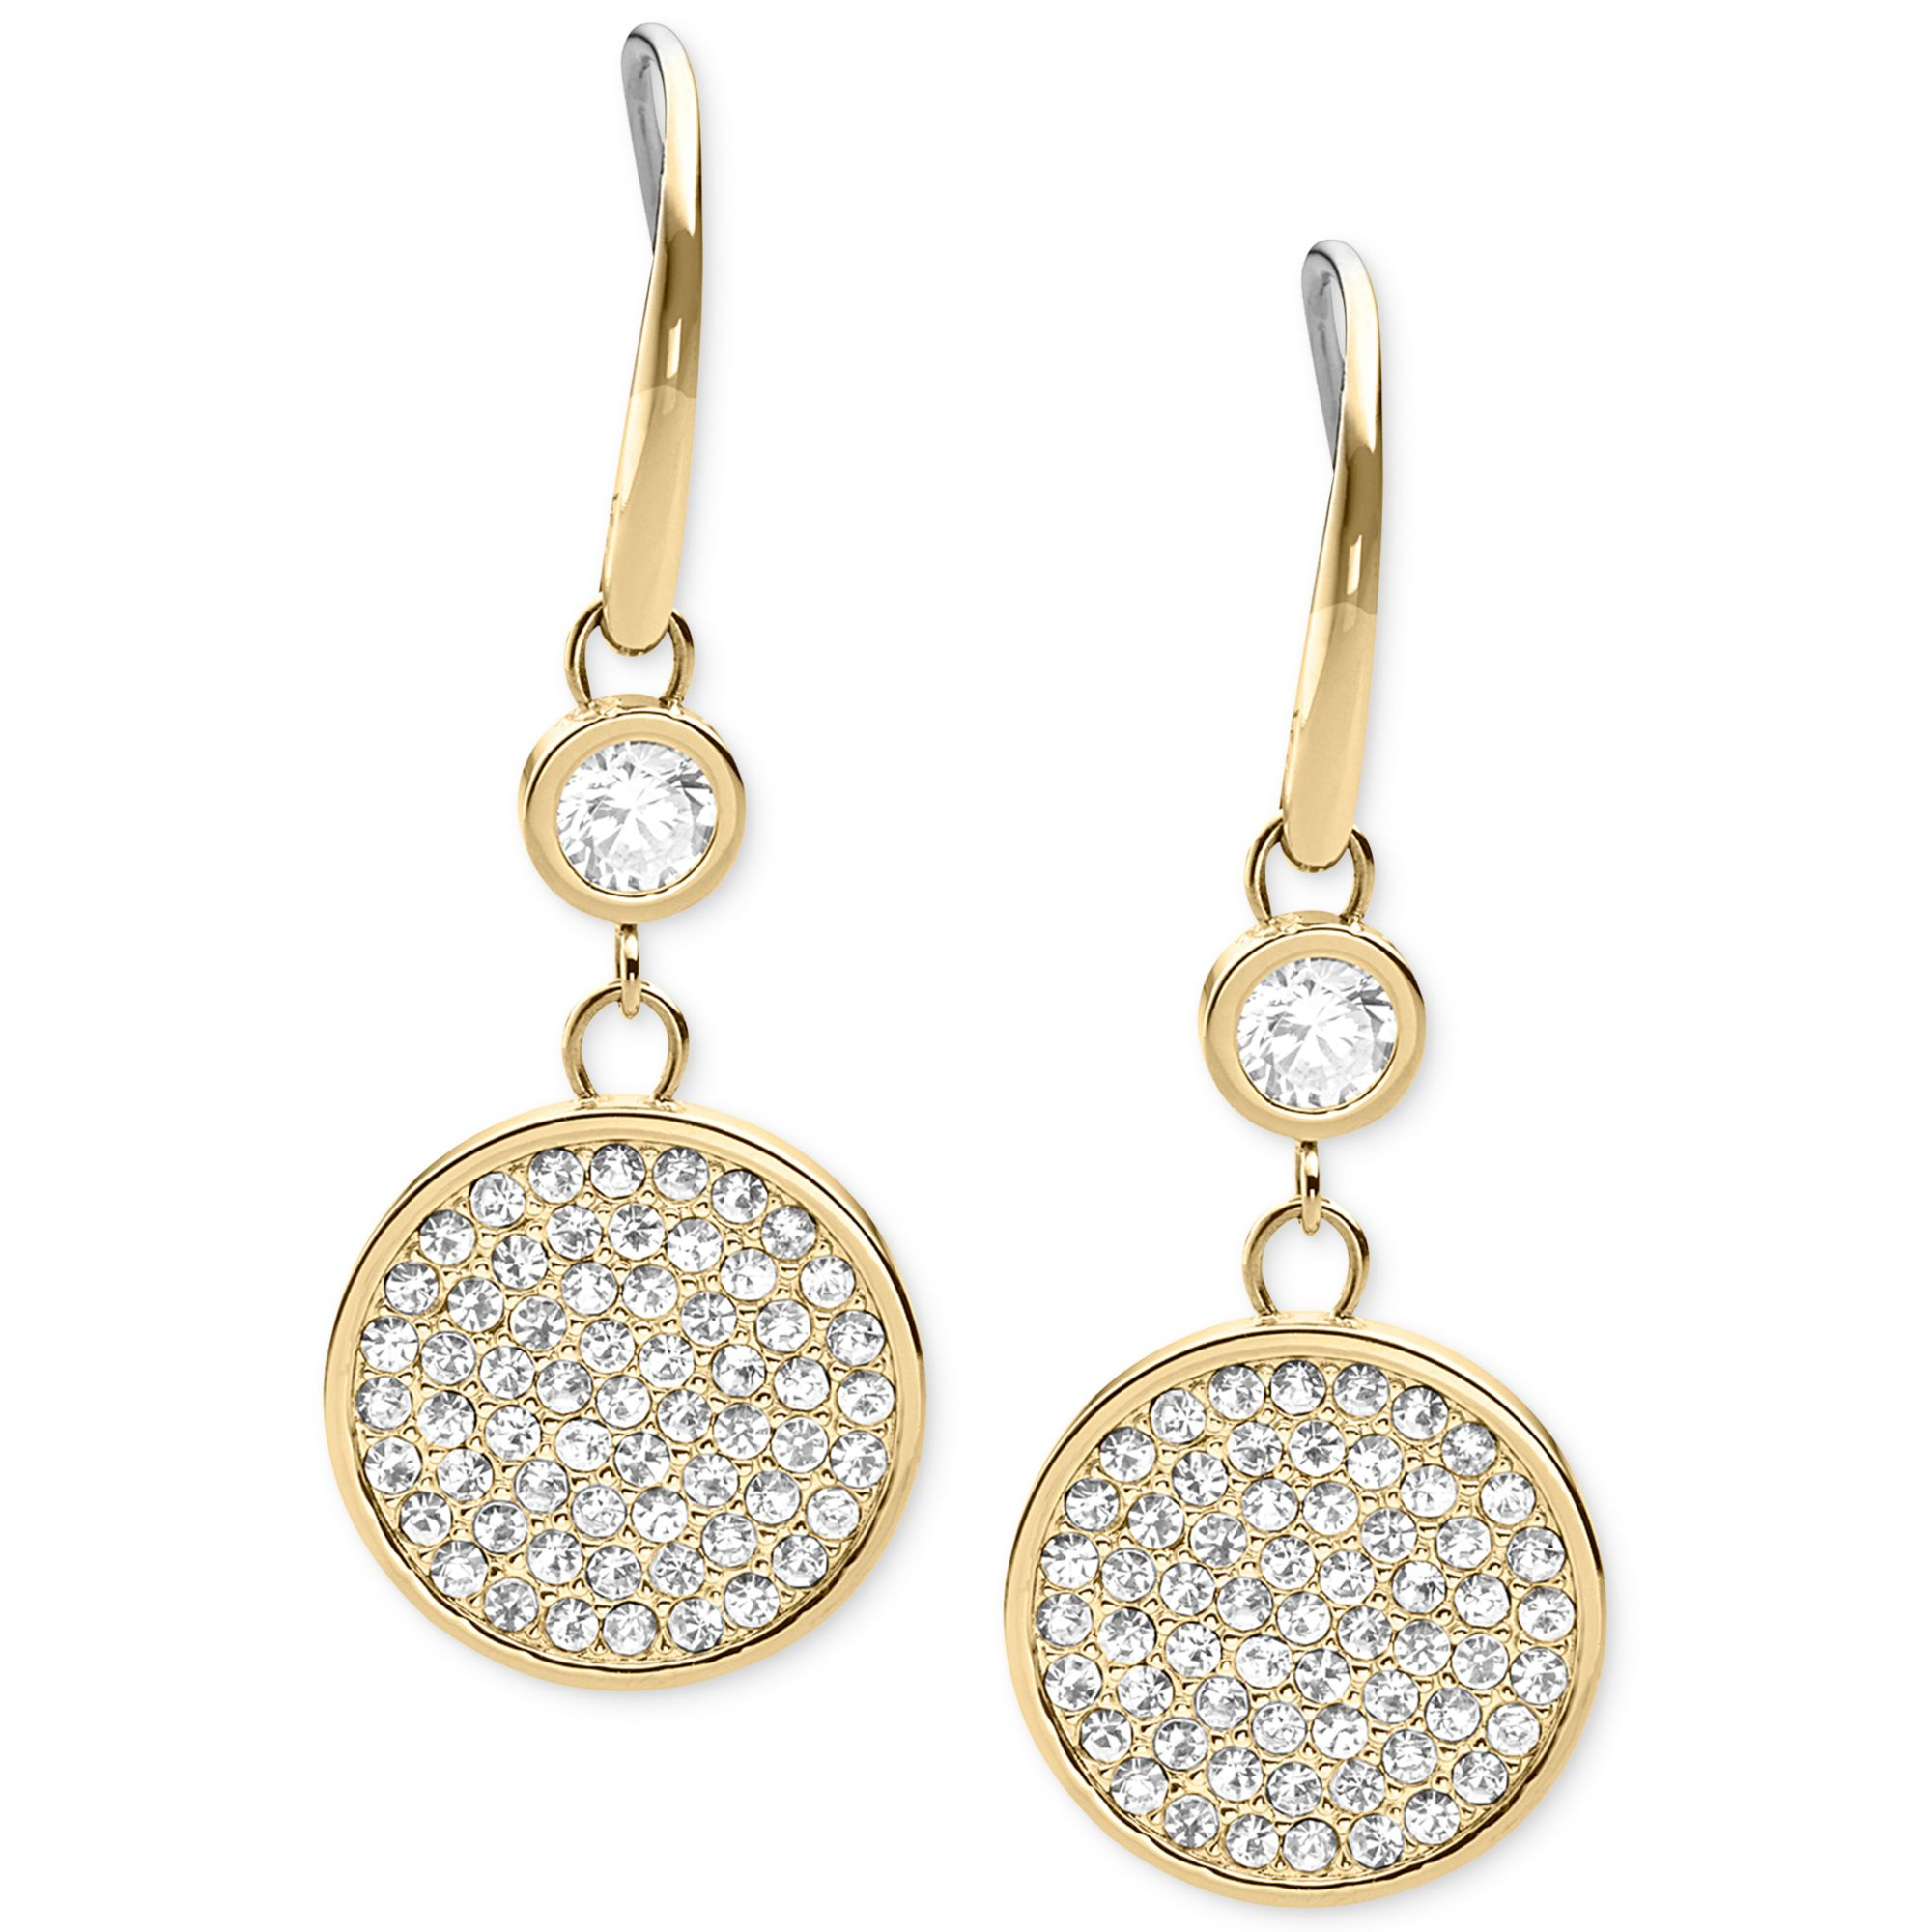 michael kors goldtone pave disc drop earrings in white